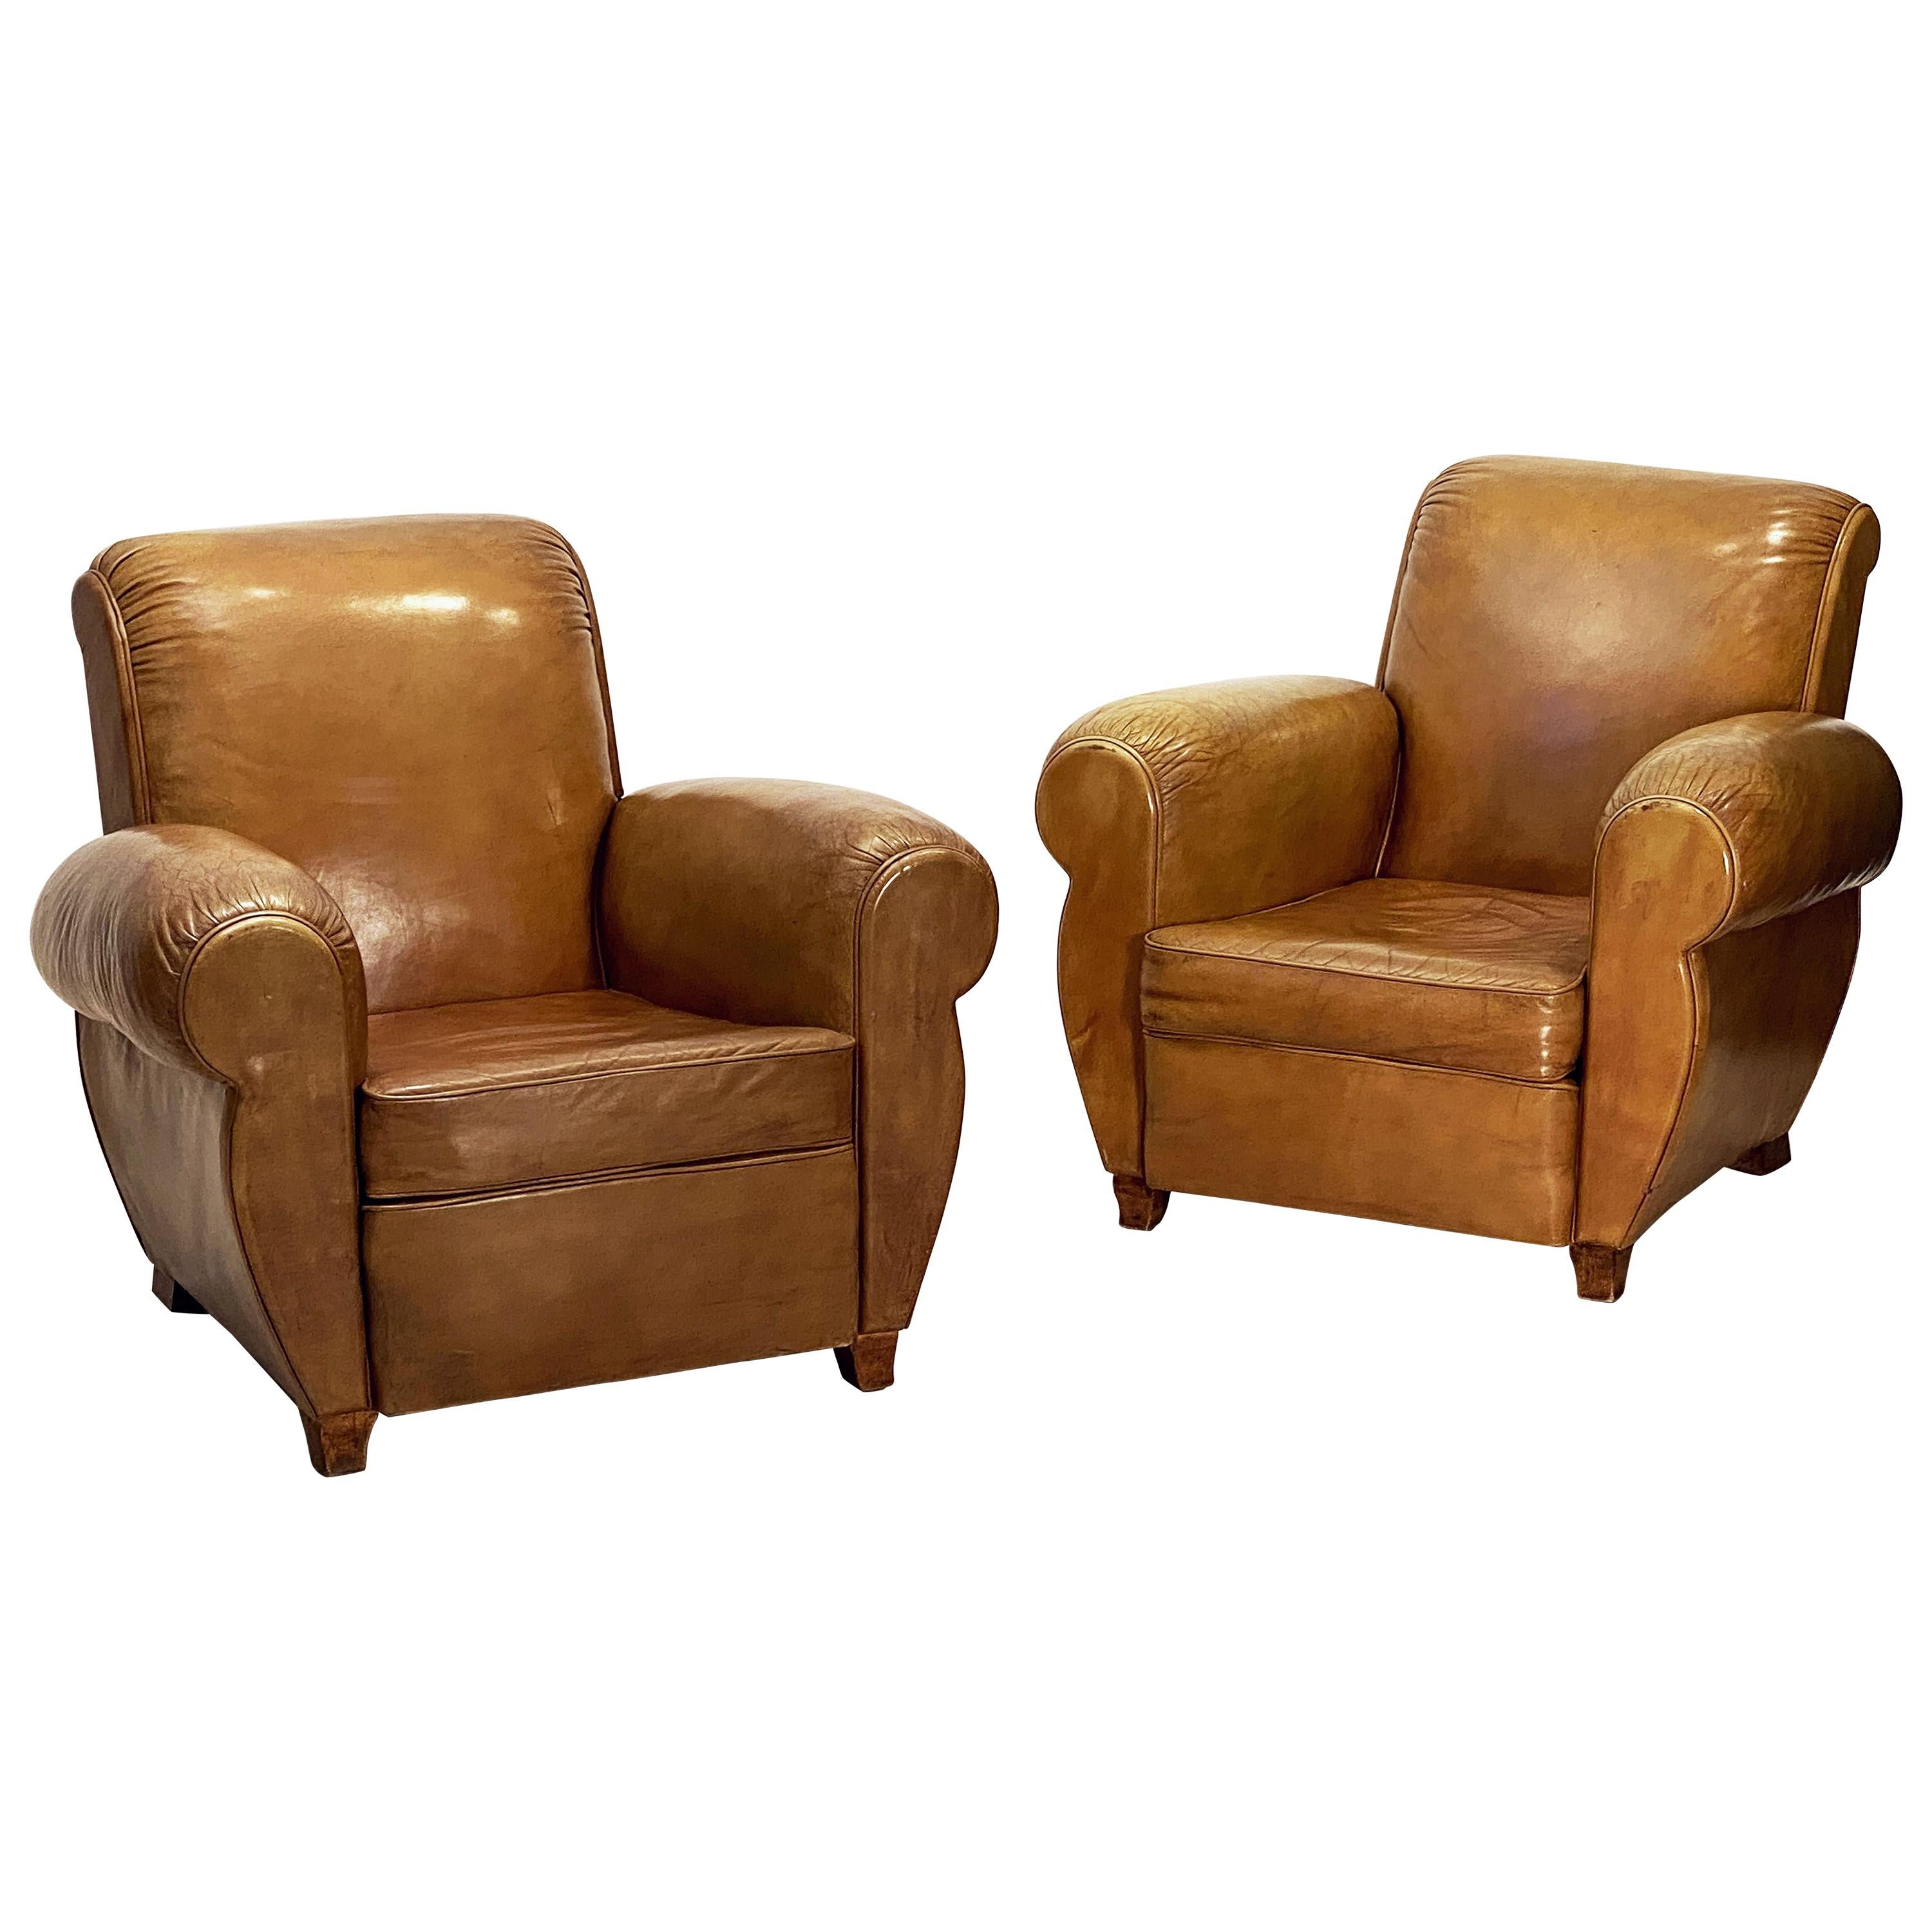 French Art Deco Leather Club Chairs 'Priced as a Pair'